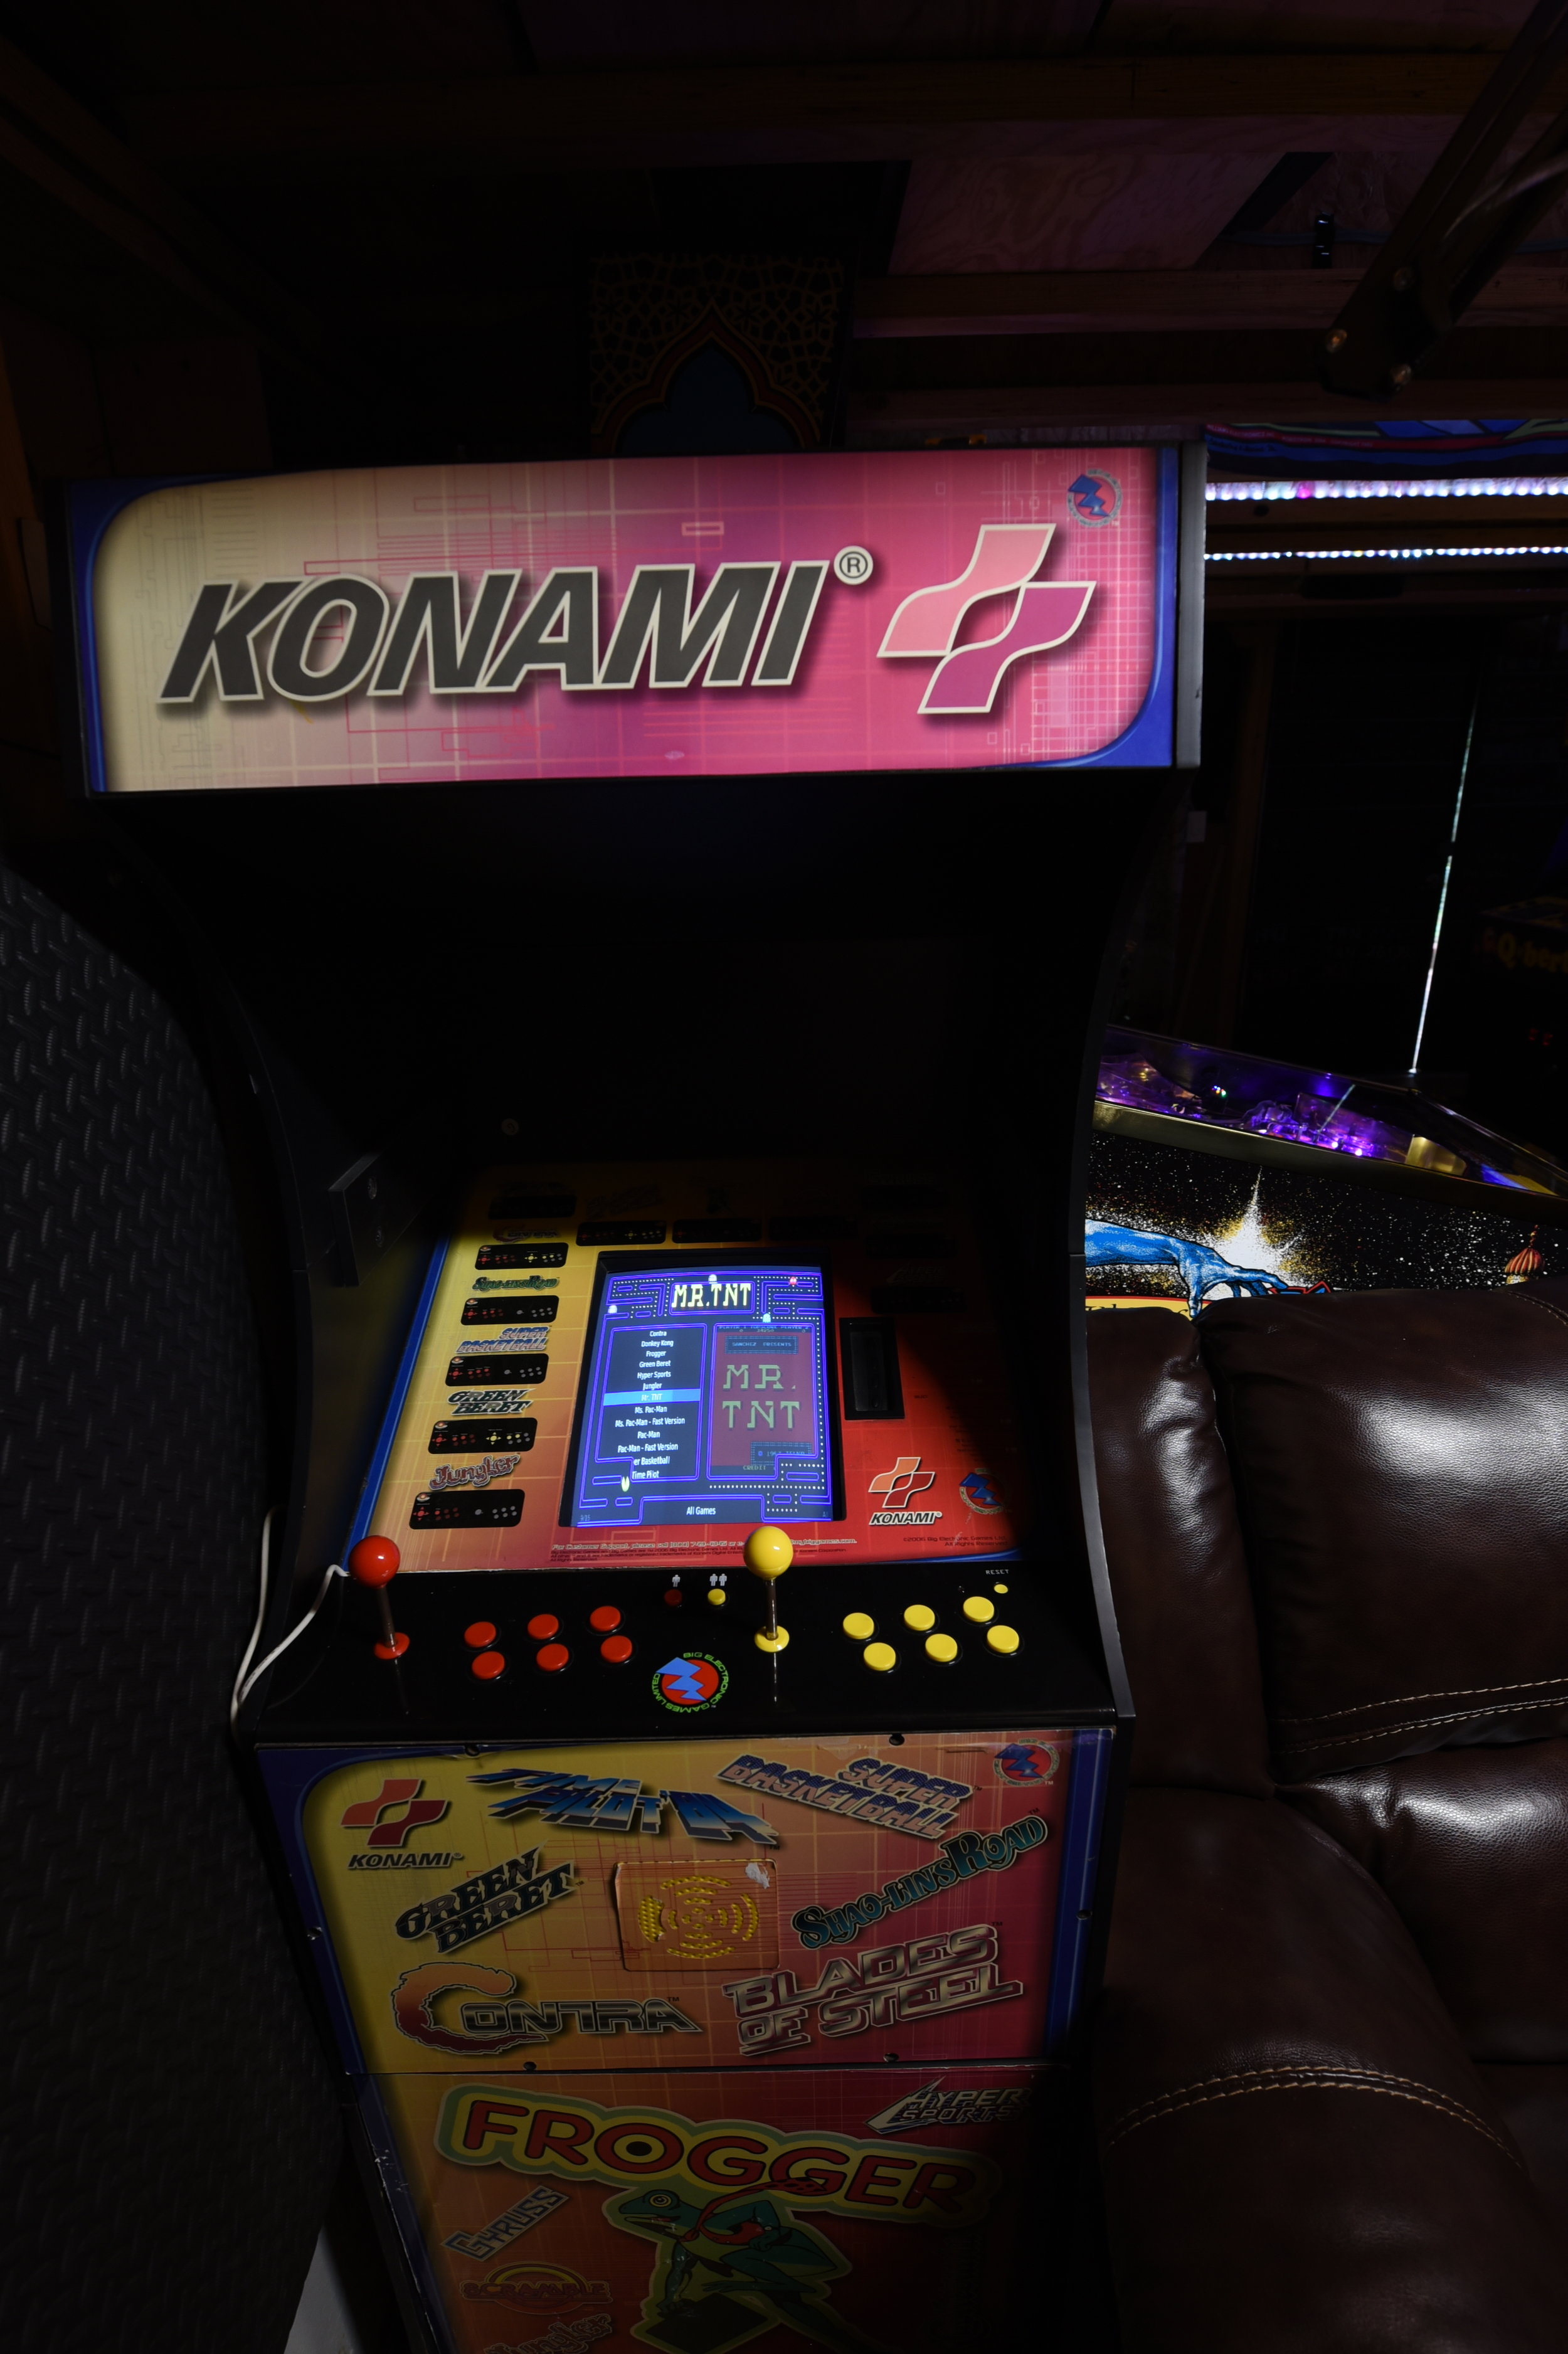 "After a few failed attempts at acquiring some cabarets, this happened. It started as a joke, re: ""Hey here's this thing, it's a piece of junk anyway and you won't owe it anything, just have fun with it."" Typically found for $100 or less, the Konami 12 in 1 is my RPi3 MAME cabinet for discovery and play of vertically oriented arcades. The 15"" VGA monitor and small cabinet footprint paired with the RaspberryJAMMA / ArPiCade setup are going to make it a pretty versatile little game that isn't taking up a ton of space. The Attract-Mode, Raspberry Pi-based Multi-MAME boot image is ridiculously customizable if you are comfortable with linux command-line and bash scripts. Converting it to JAMMA and using VGA to CGA adaptor, the front hatch access will make it a convenient test bench for JAMMA games. Currently working on building a different control panel with less-crappy stick and switches. I'd kinda like to find the Midway 12 in 1, equivalent horizontal cabinet now..."